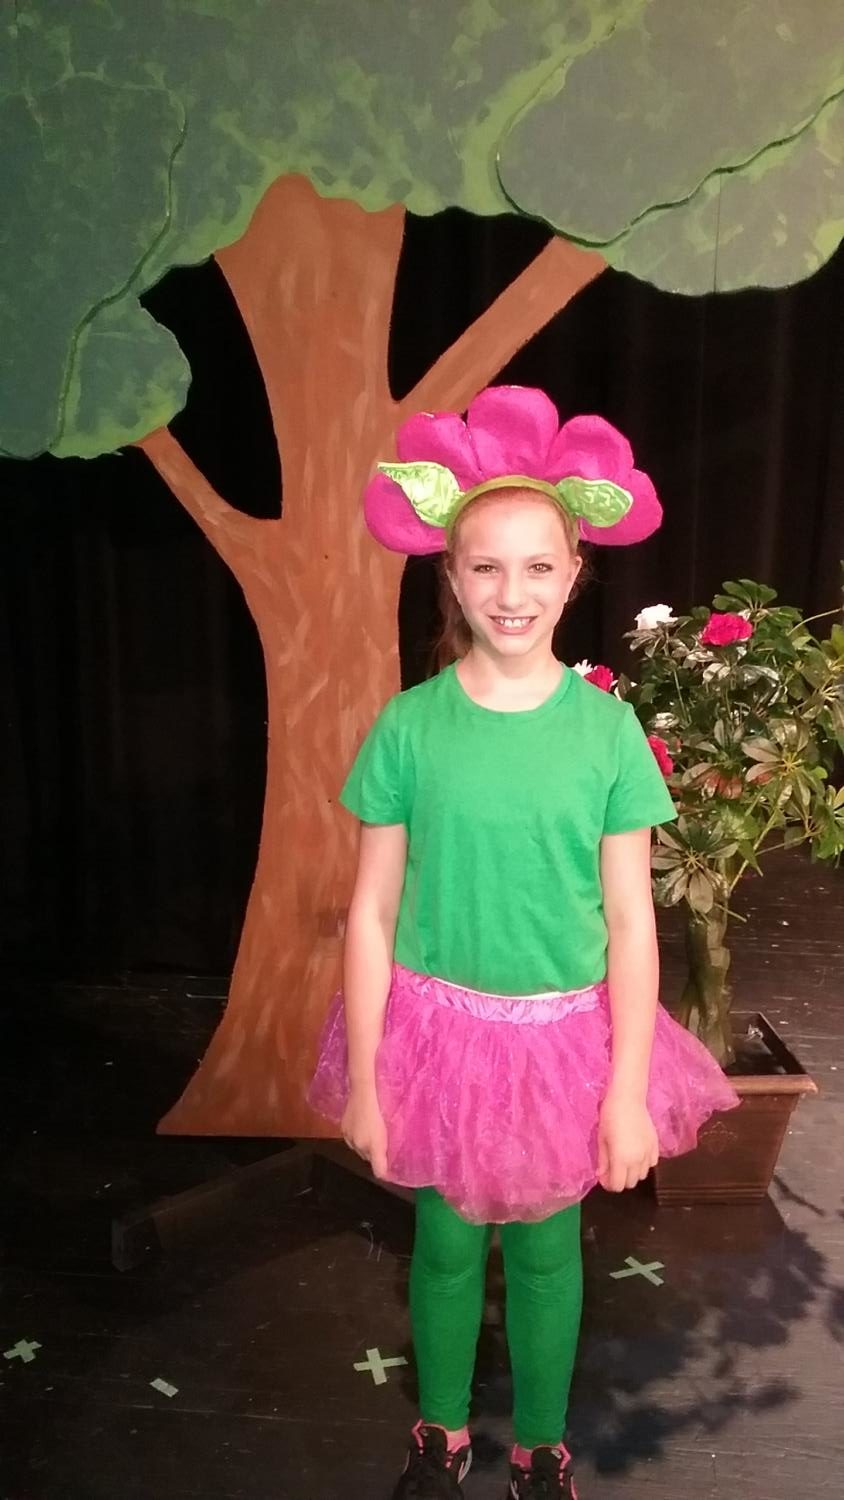 """PICTURE PERFECT. Riley Stauffer, third grader, poses after the final performance of Alice in Wonderland."""" In the musical, Stauffer was one of the flowers during the song, """"Golden Afternoon.""""  She was also in several other songs throughout the show. Photo courtesy of Maddi Saunders."""